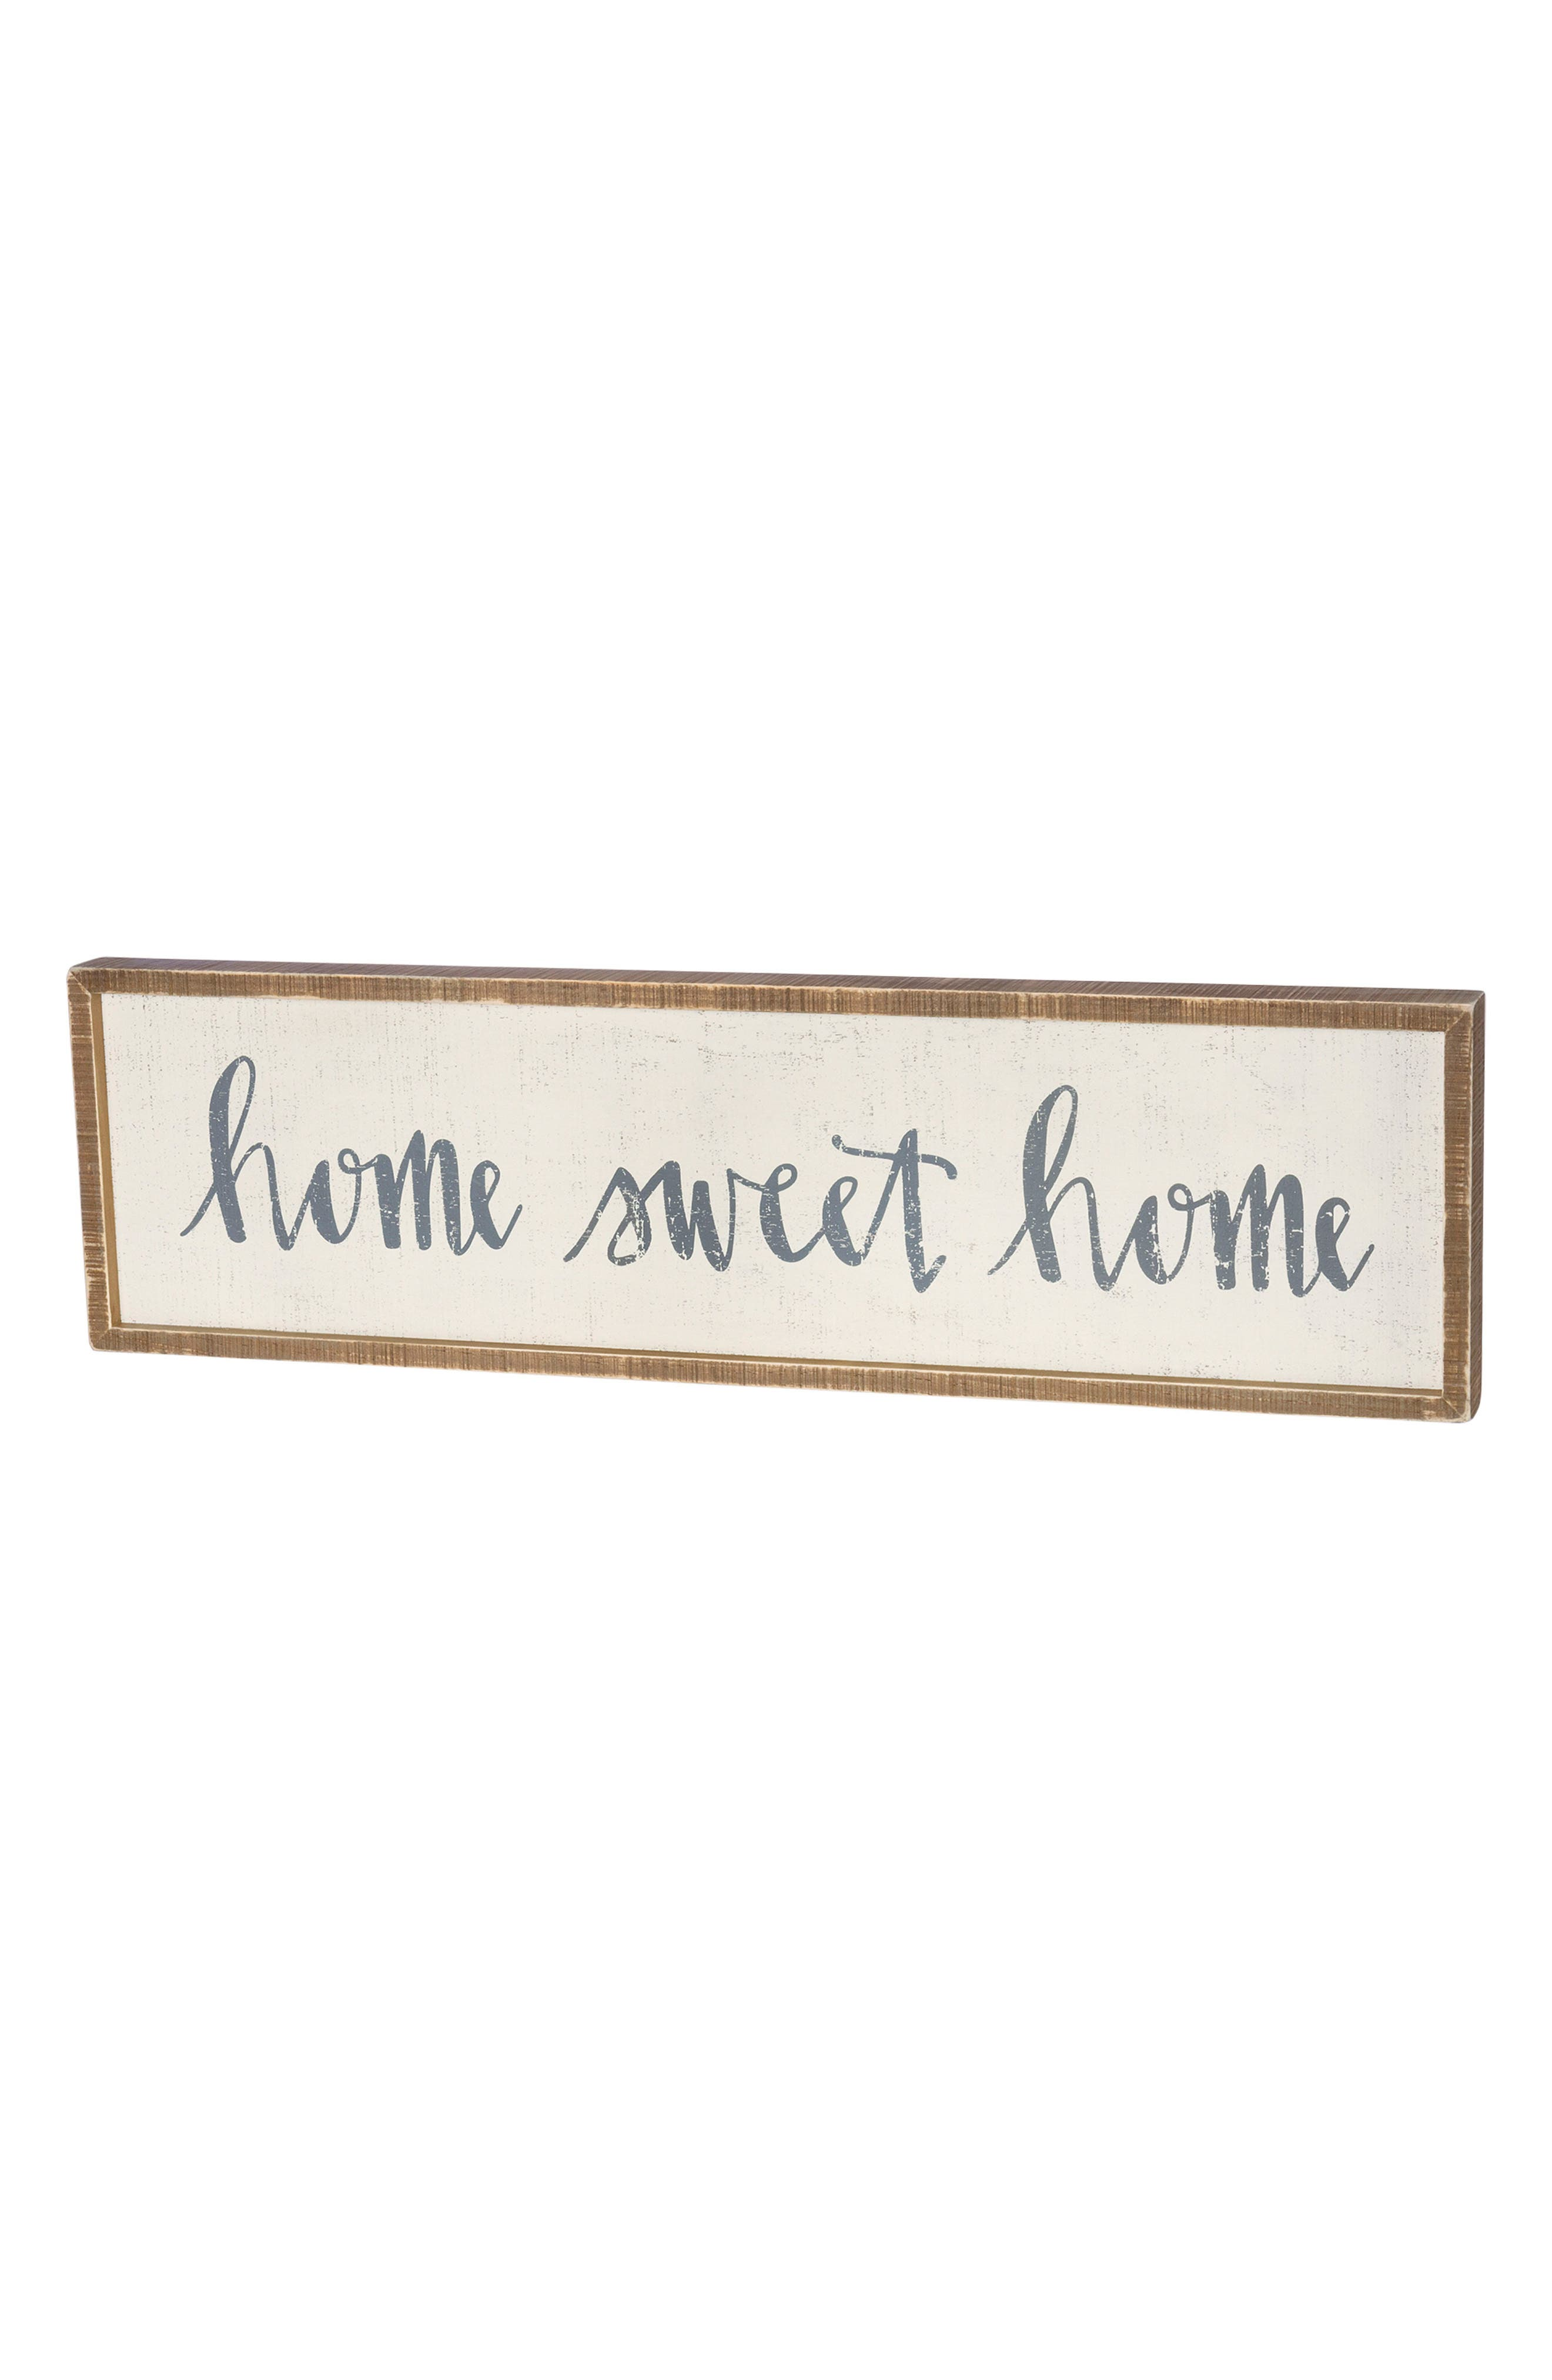 Home Sweet Home Inset Box Sign,                             Main thumbnail 1, color,                             White